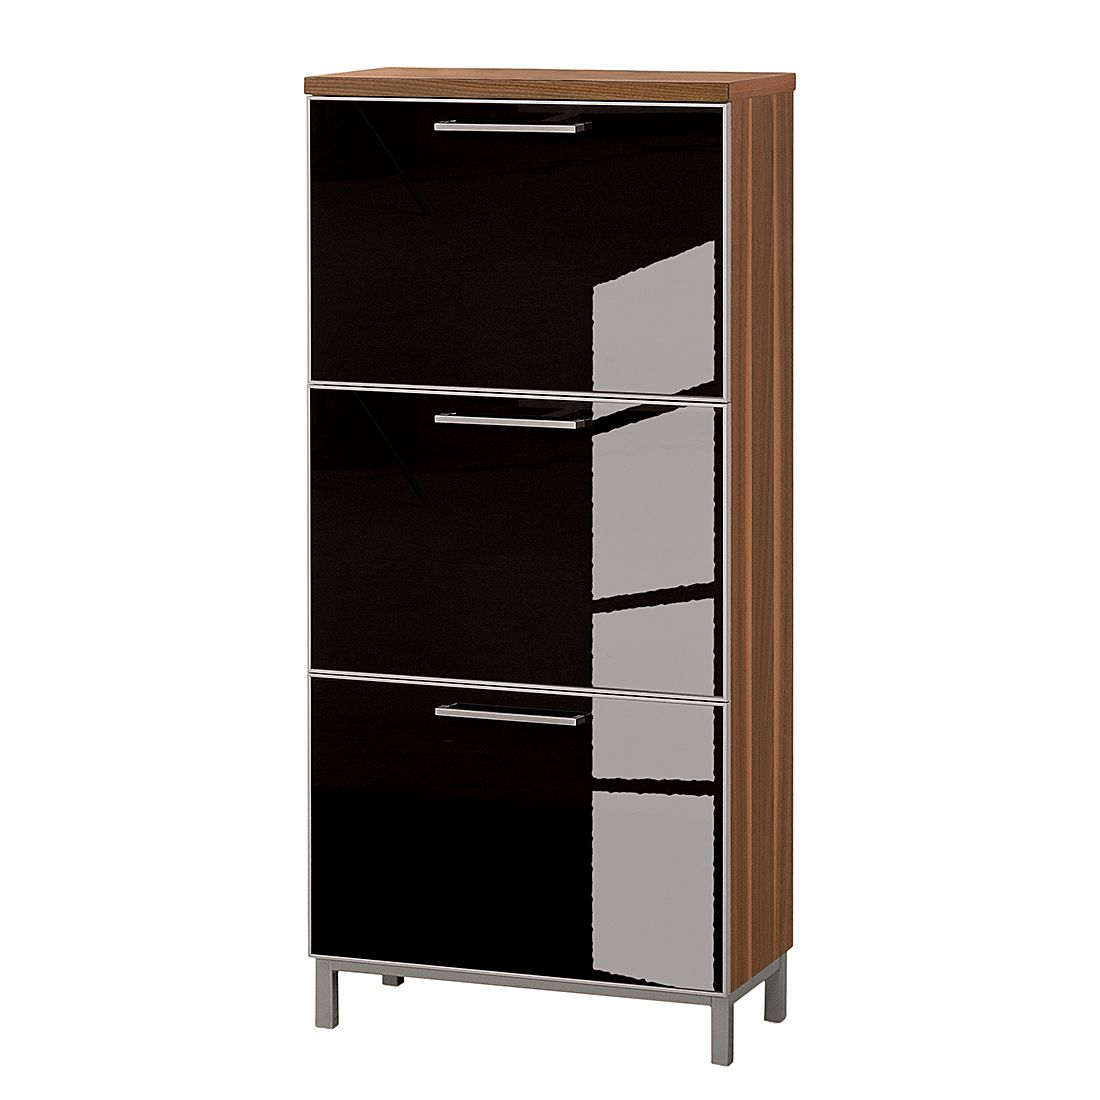 schuhschrank alves iv nussbaum glas anthrazit tiefe 20 cm f r. Black Bedroom Furniture Sets. Home Design Ideas